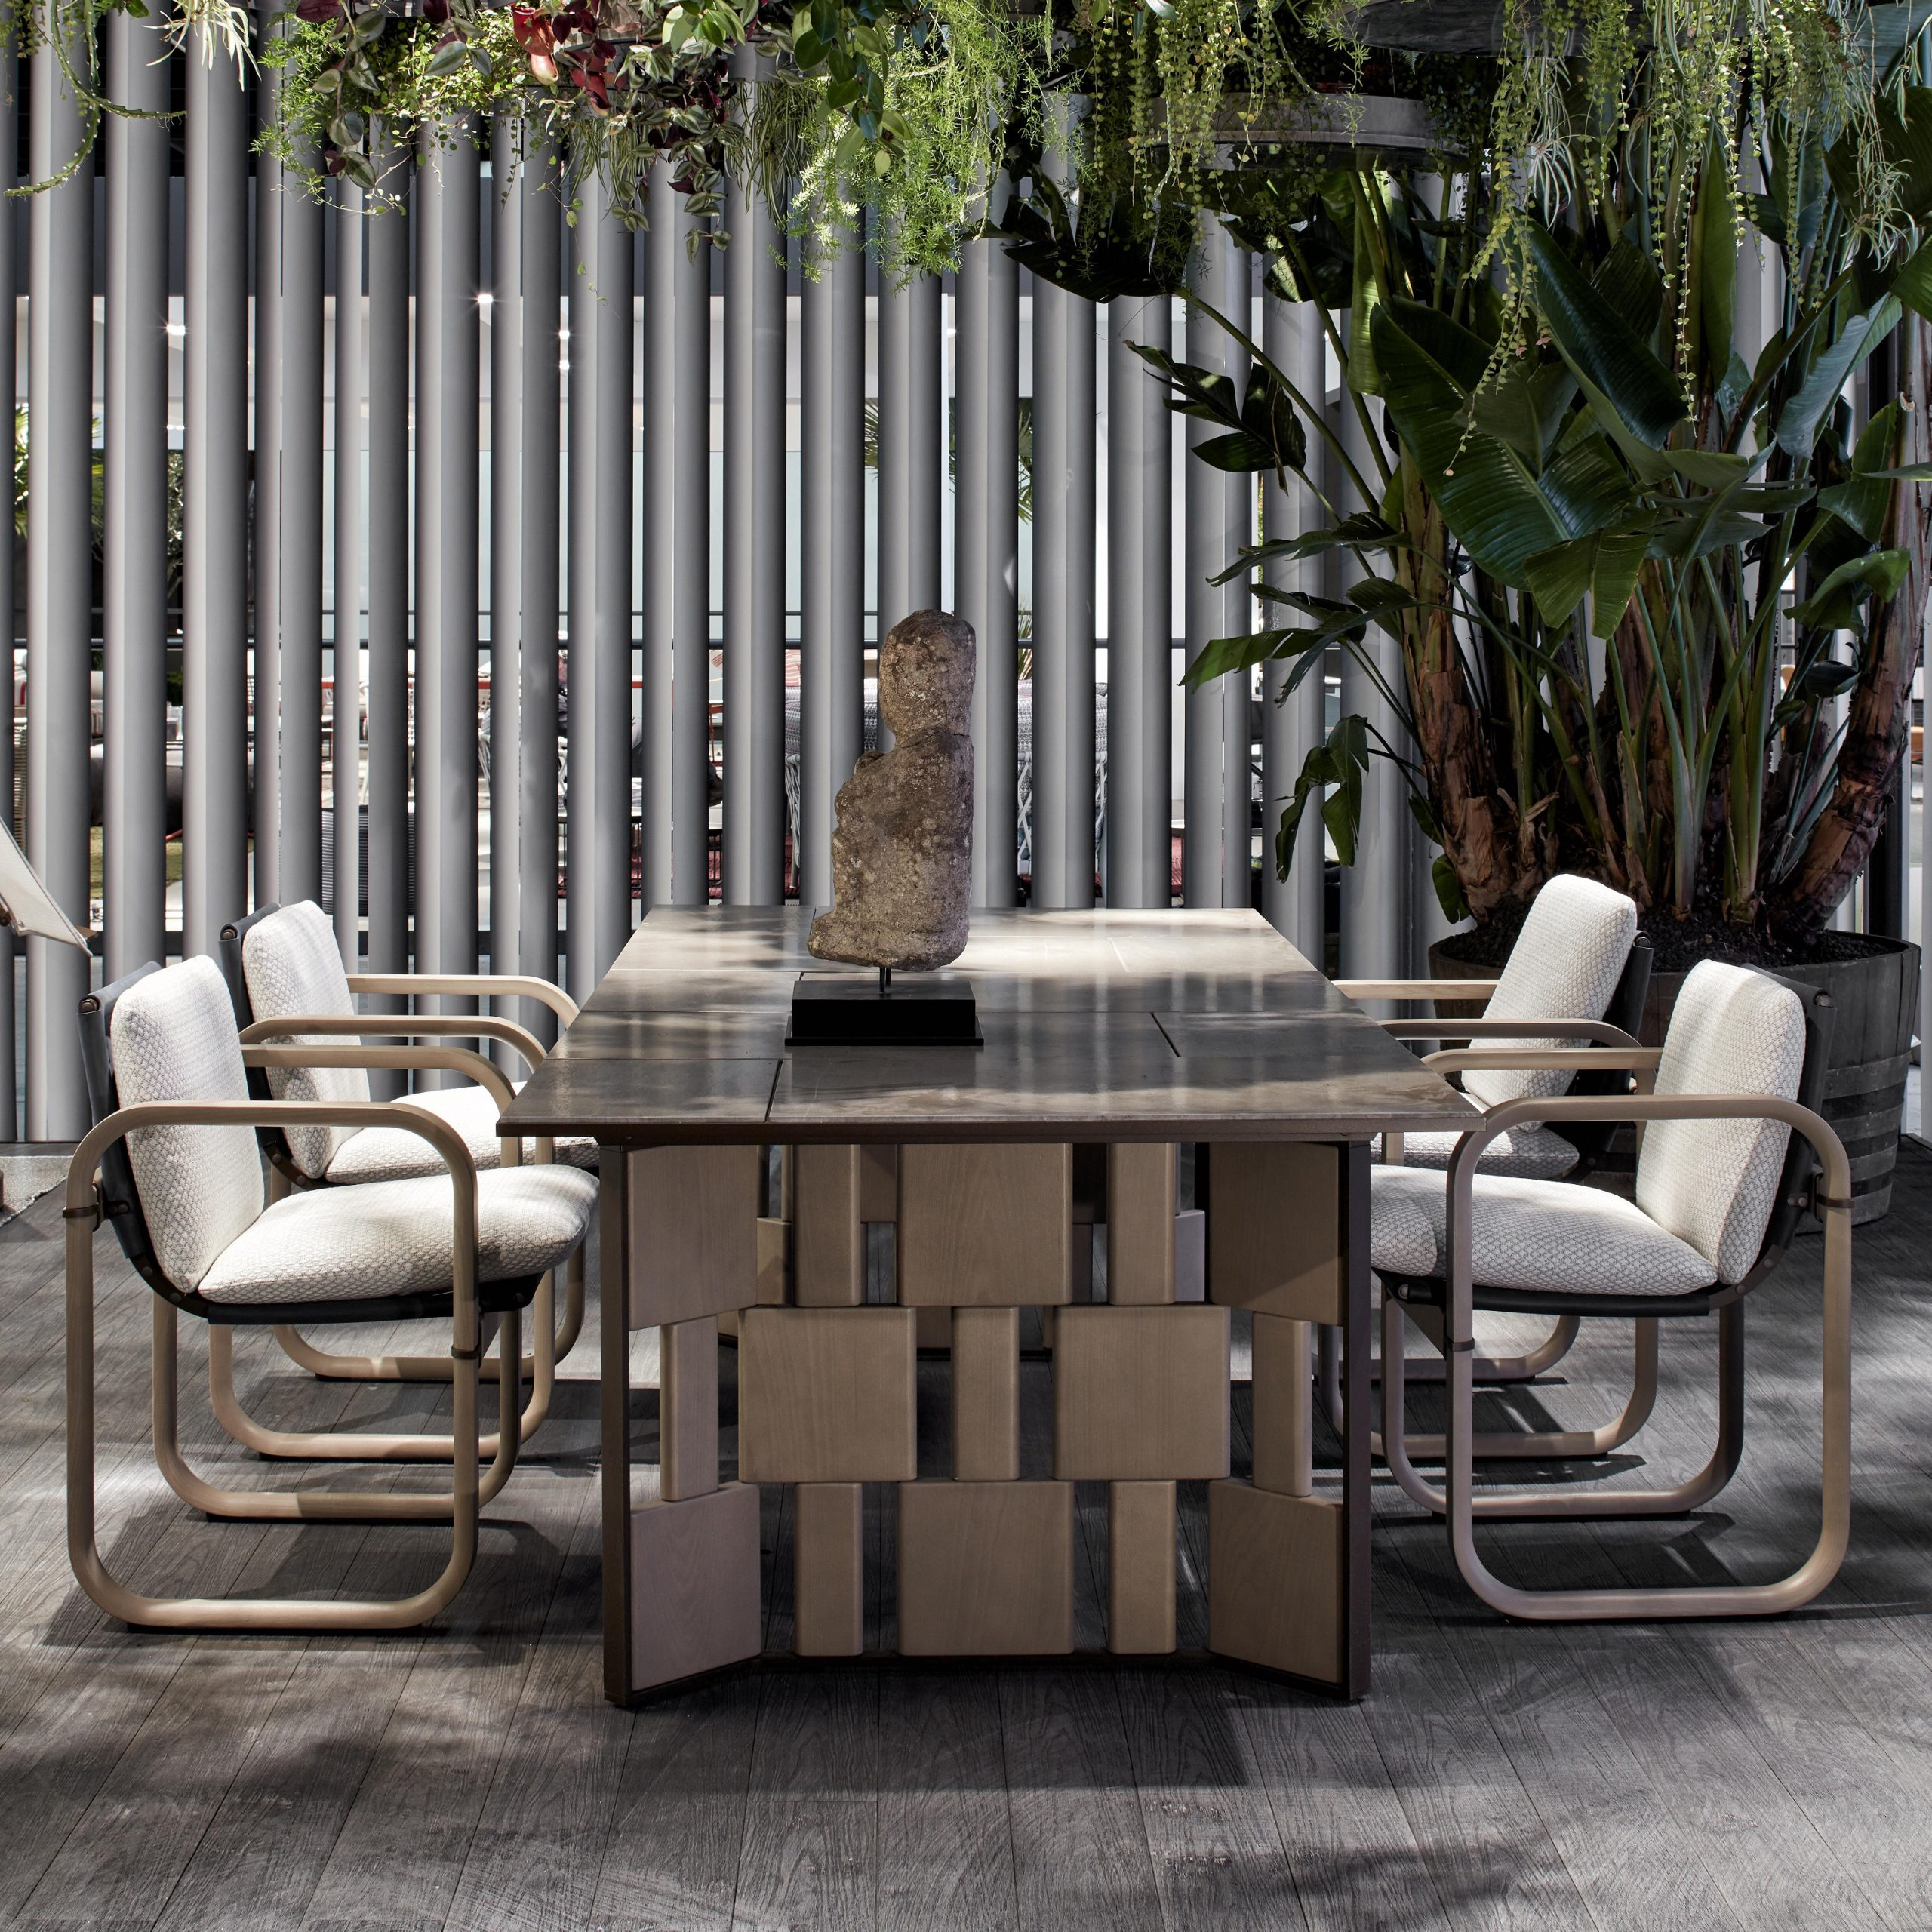 GIORGETTI OUTDOOR DINING